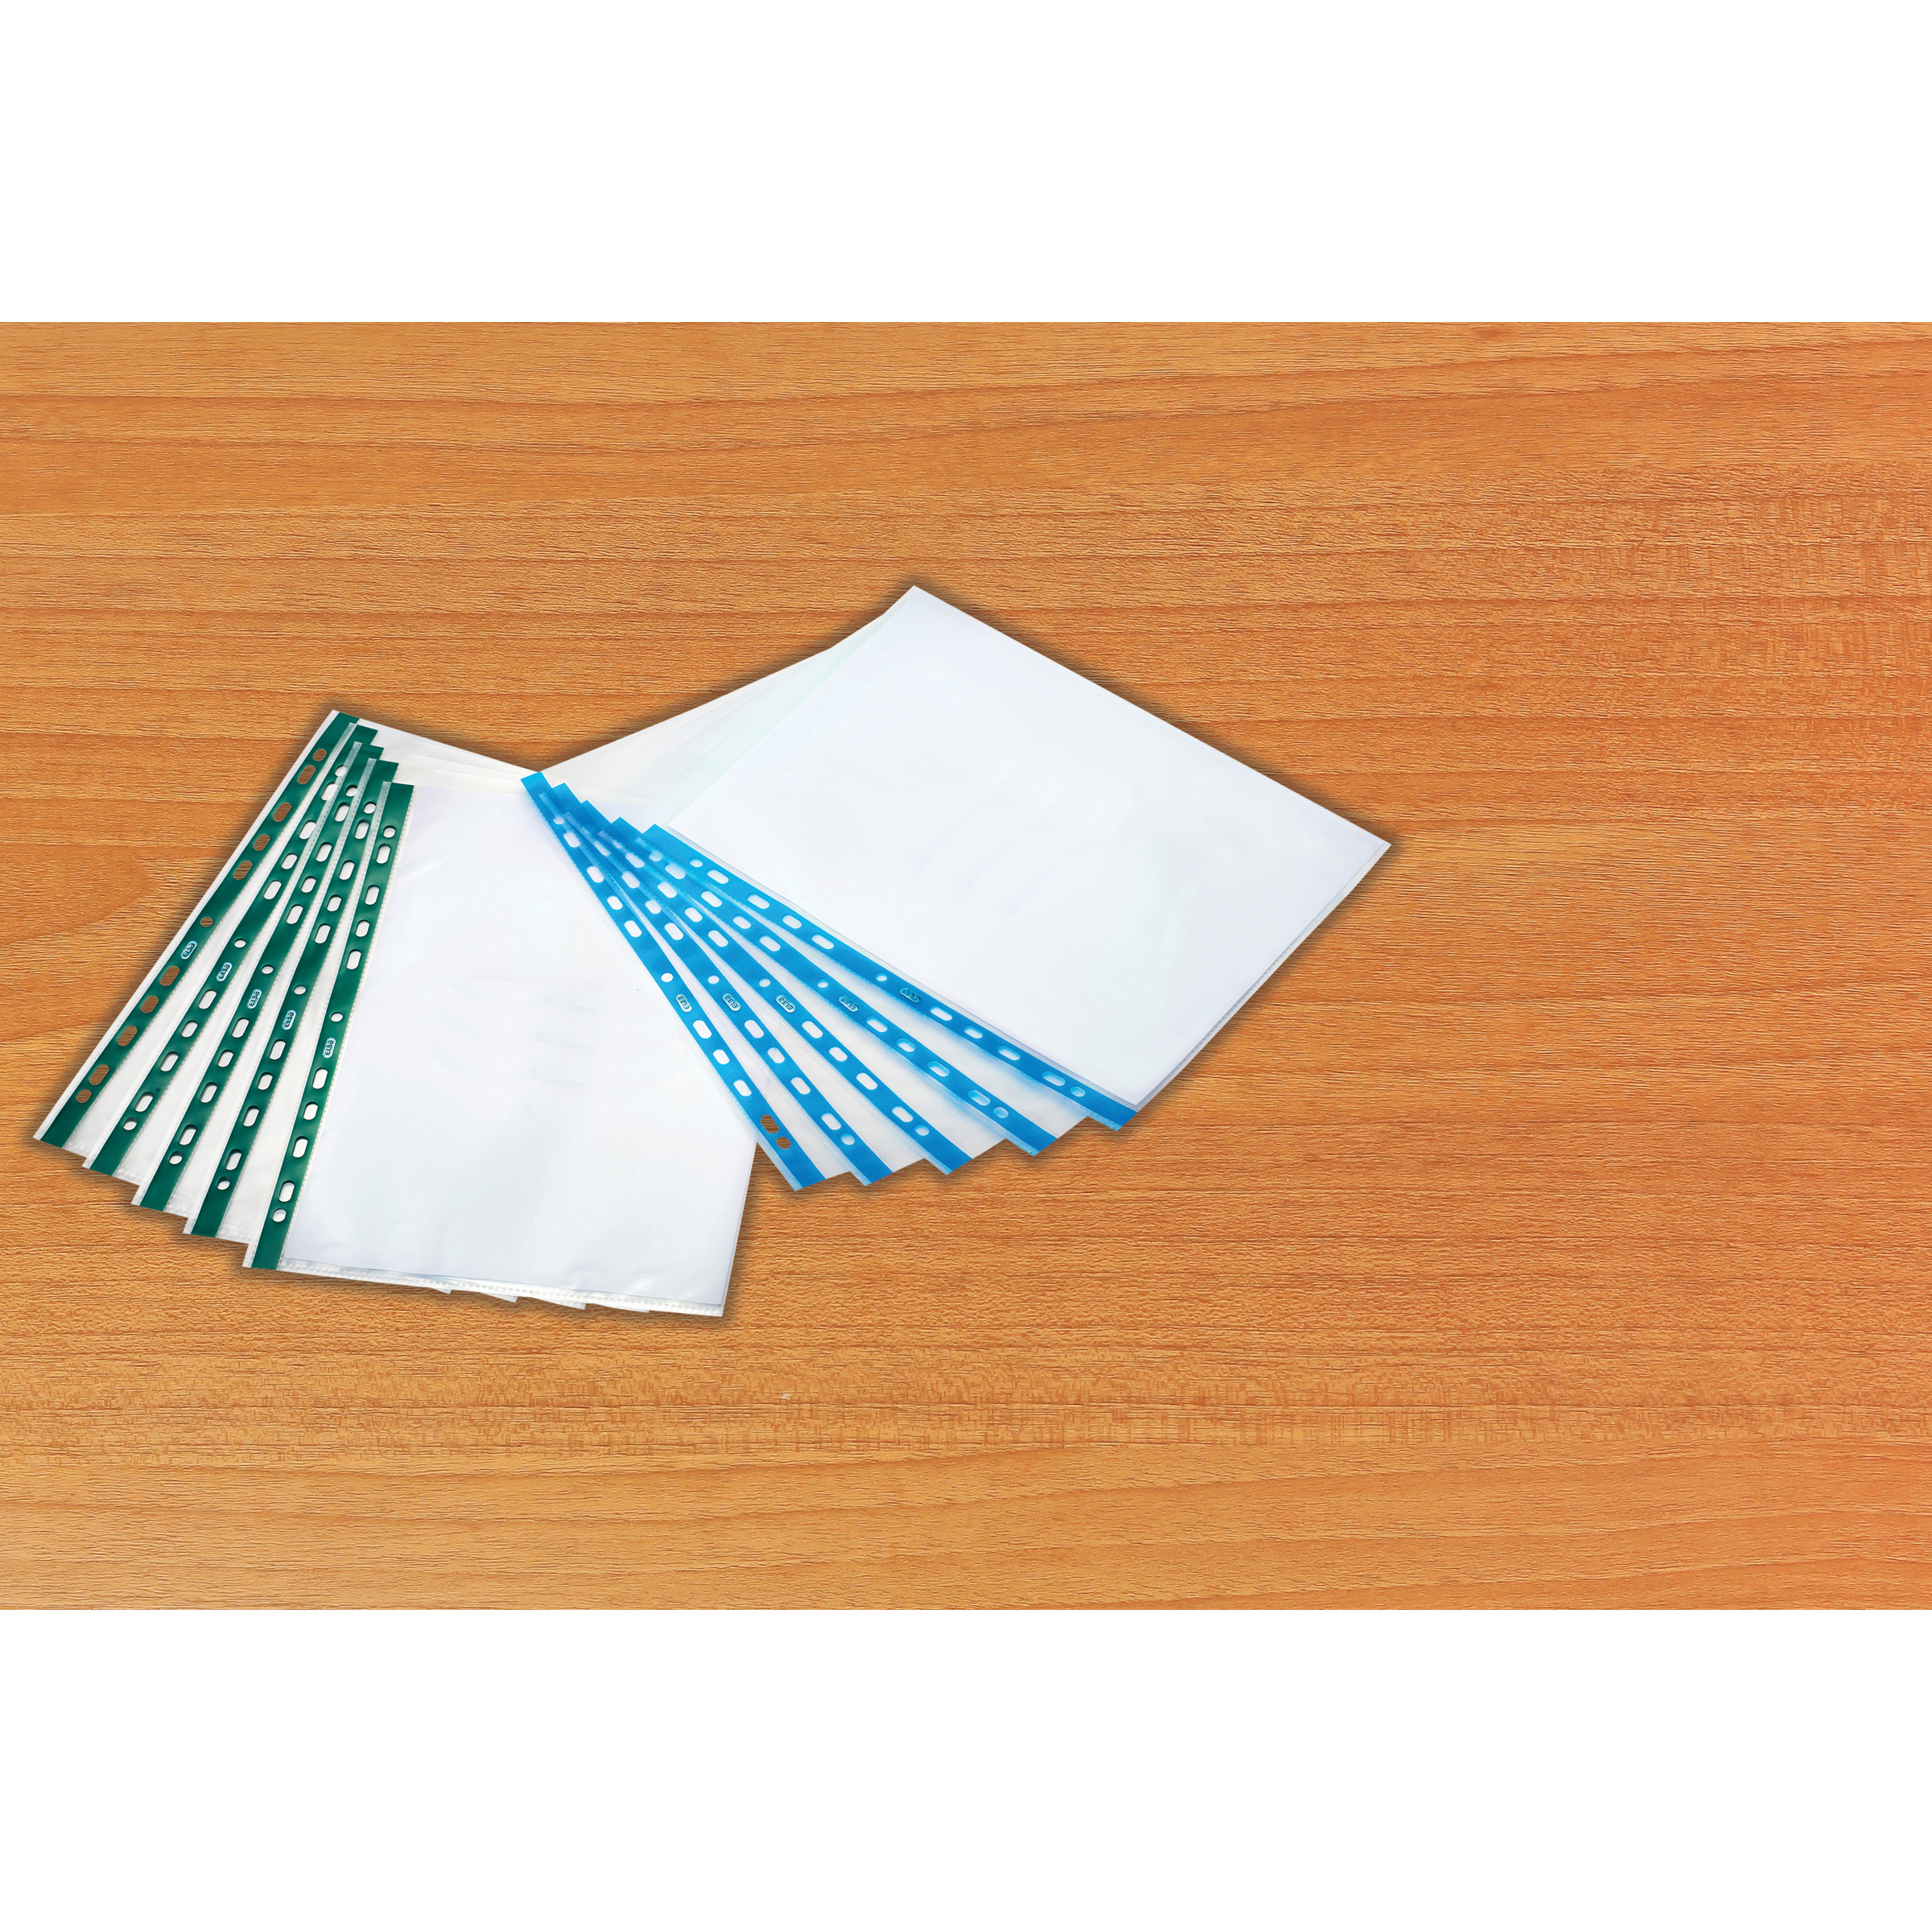 Oxford Pchd Pocket Polyprop Blue Strip Top-opening 75 Micron A4 Emb Clear Ref 400002150 Pack 100